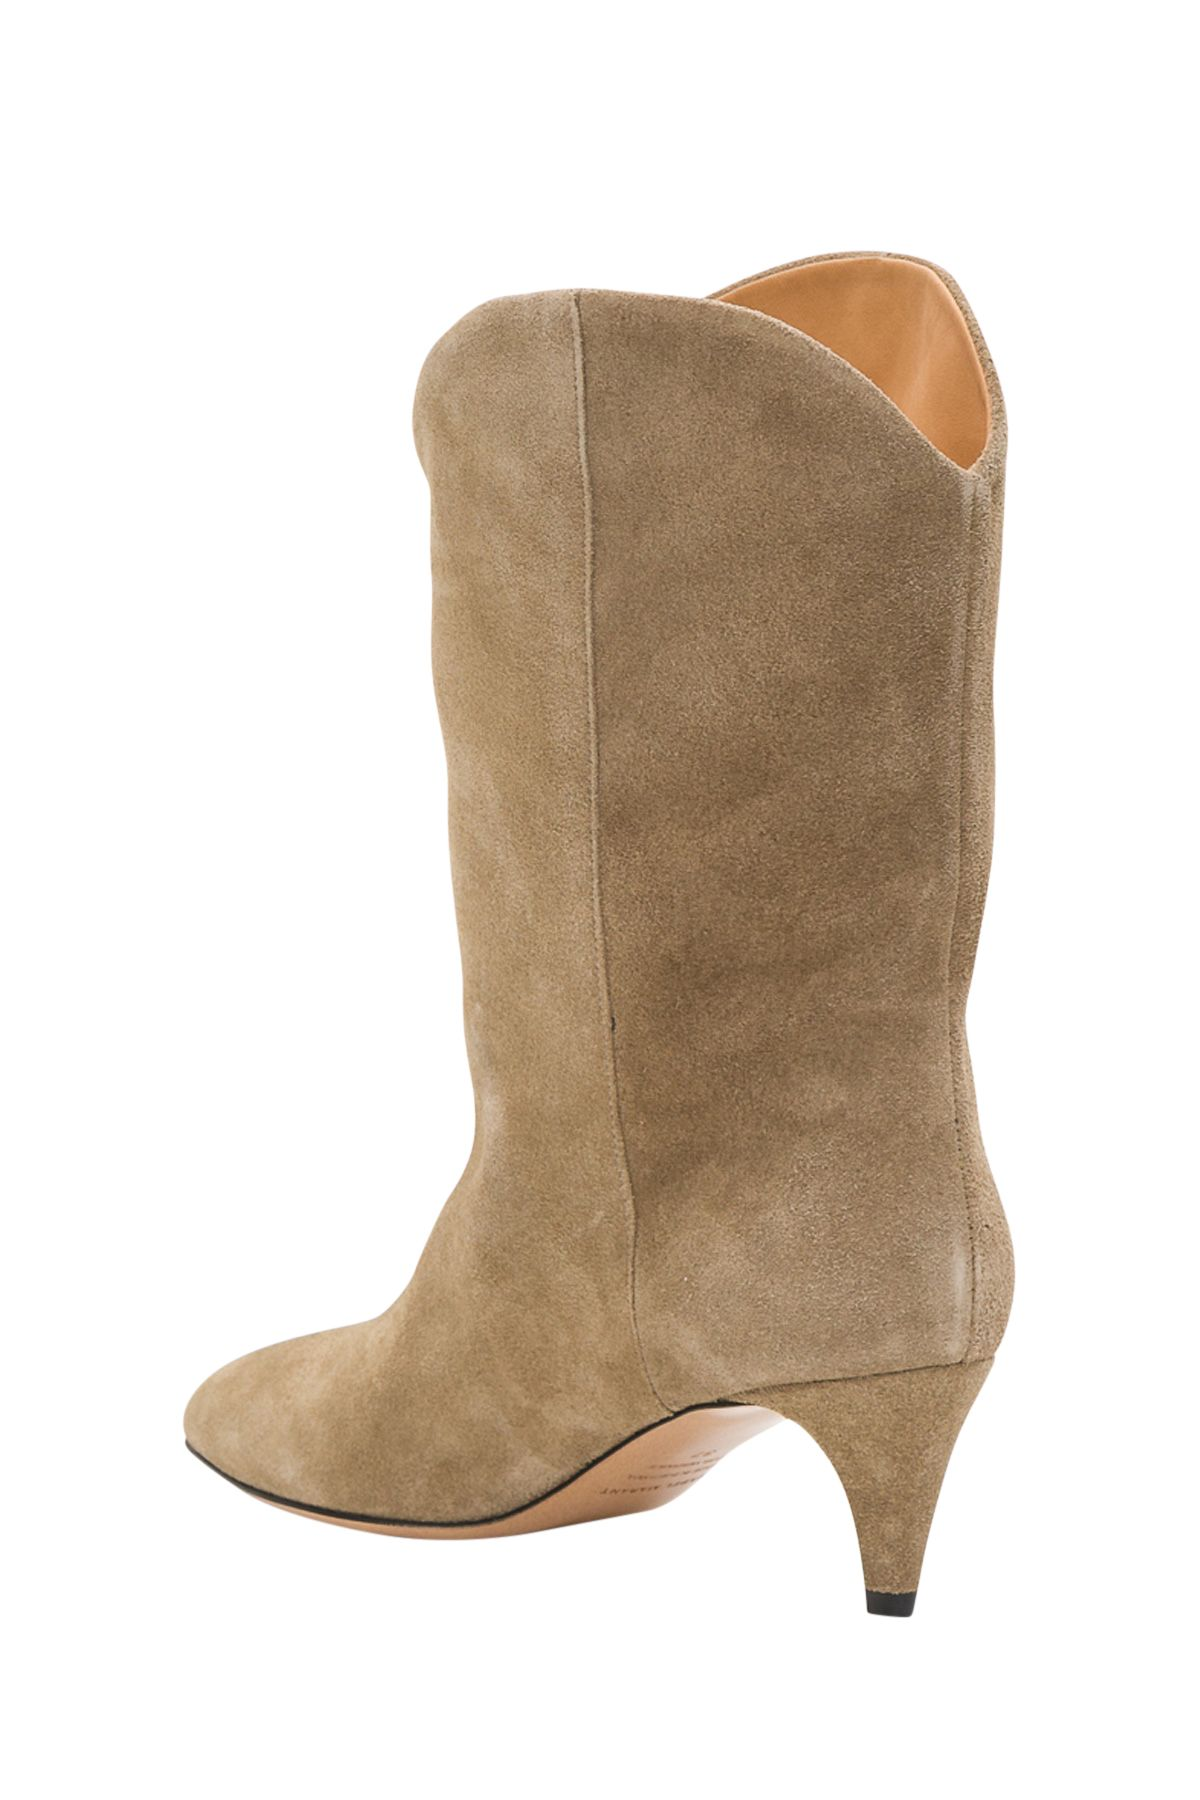 193fab1cef Isabel Marant Isabel Marant Dernee Suede Boots With Cone Heel ...